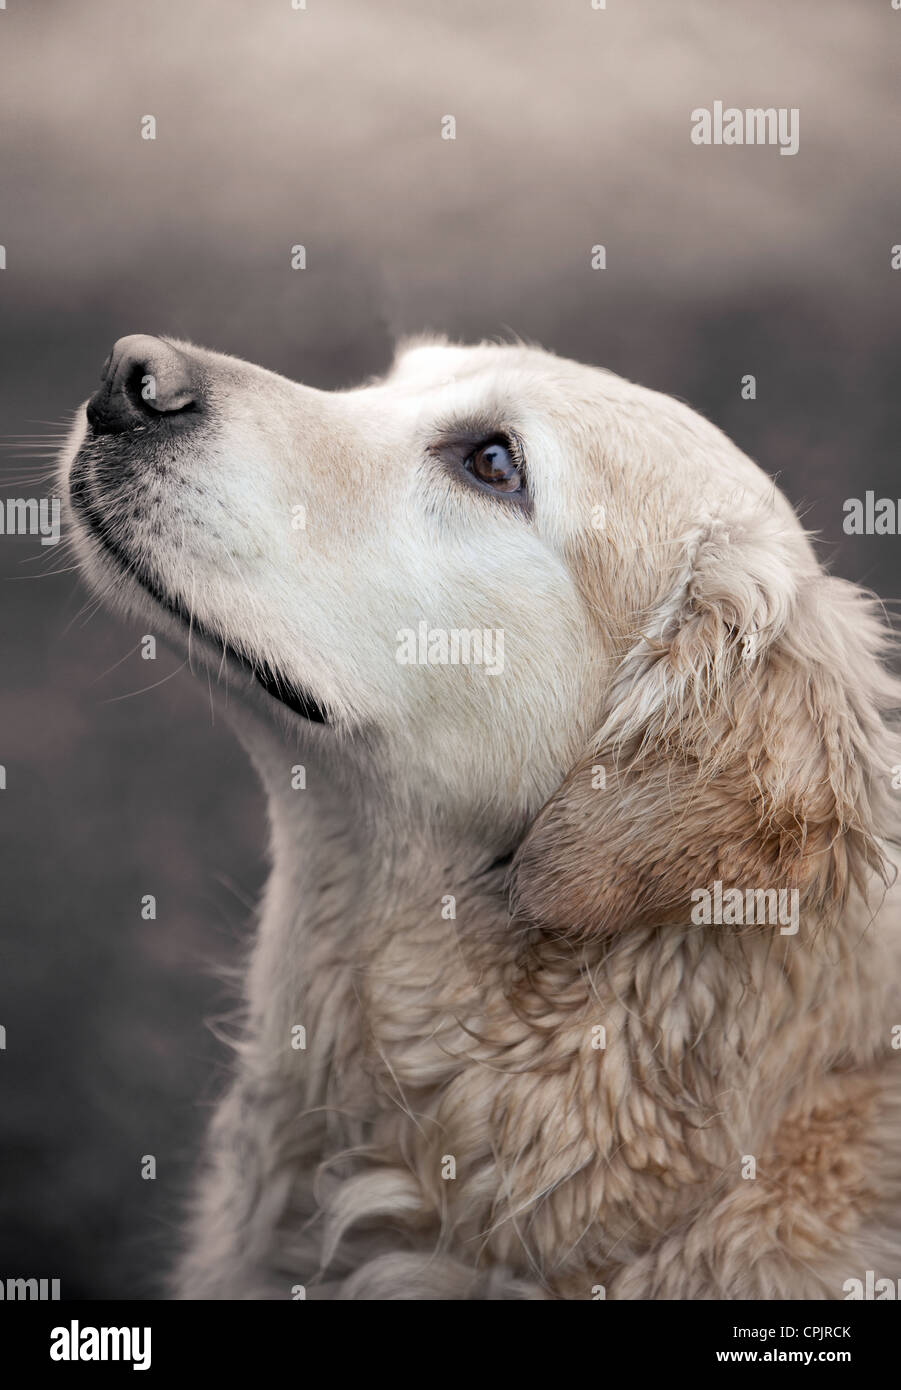 Golden Retriever posed sitting shot from side. - Stock Image